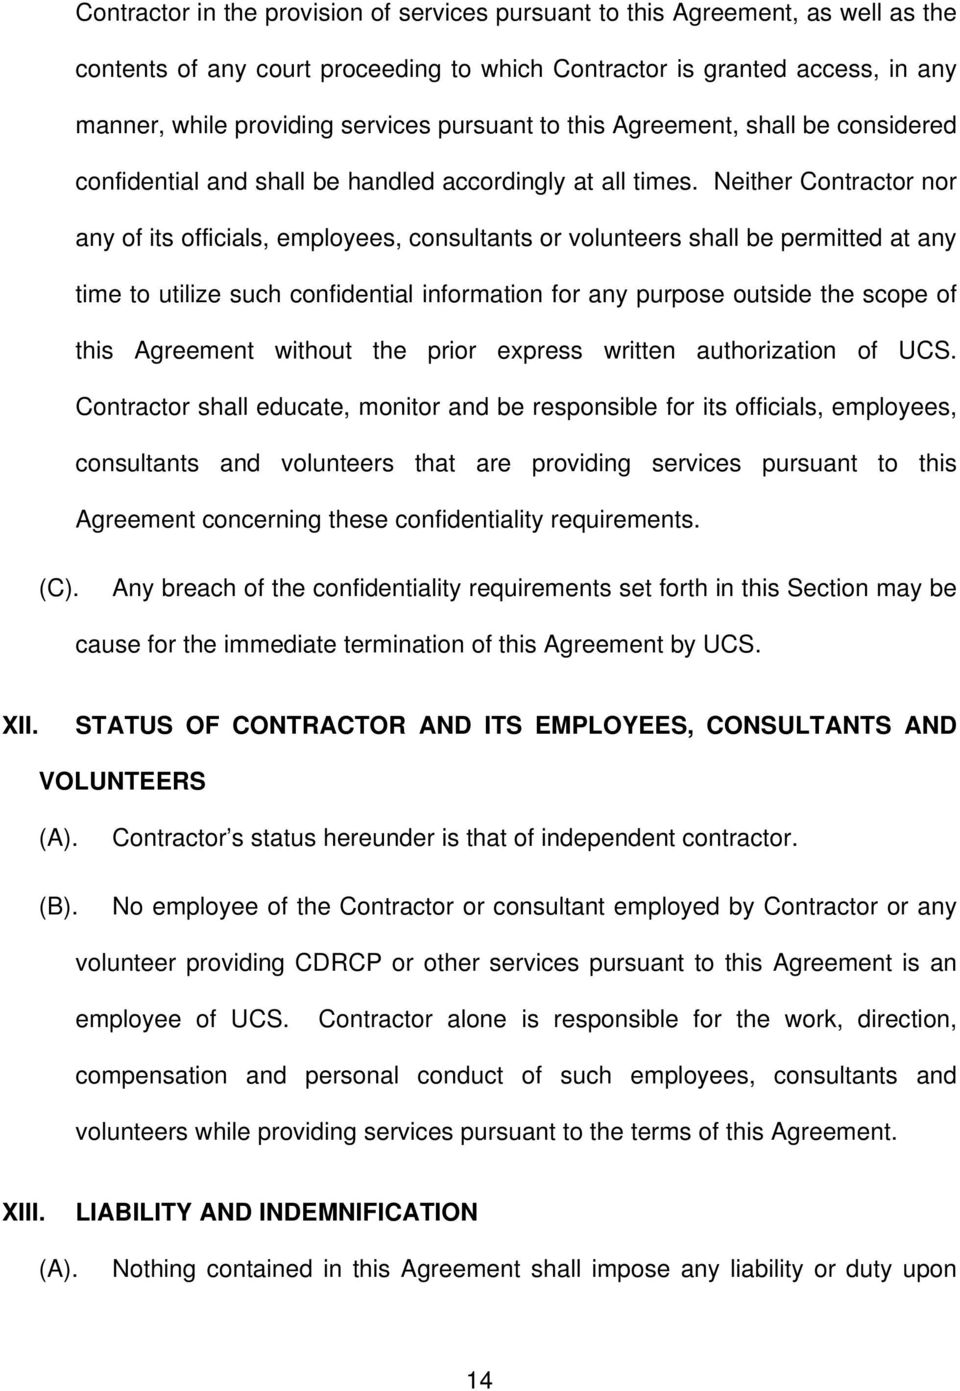 Neither Contractor nor any of its officials, employees, consultants or volunteers shall be permitted at any time to utilize such confidential information for any purpose outside the scope of this